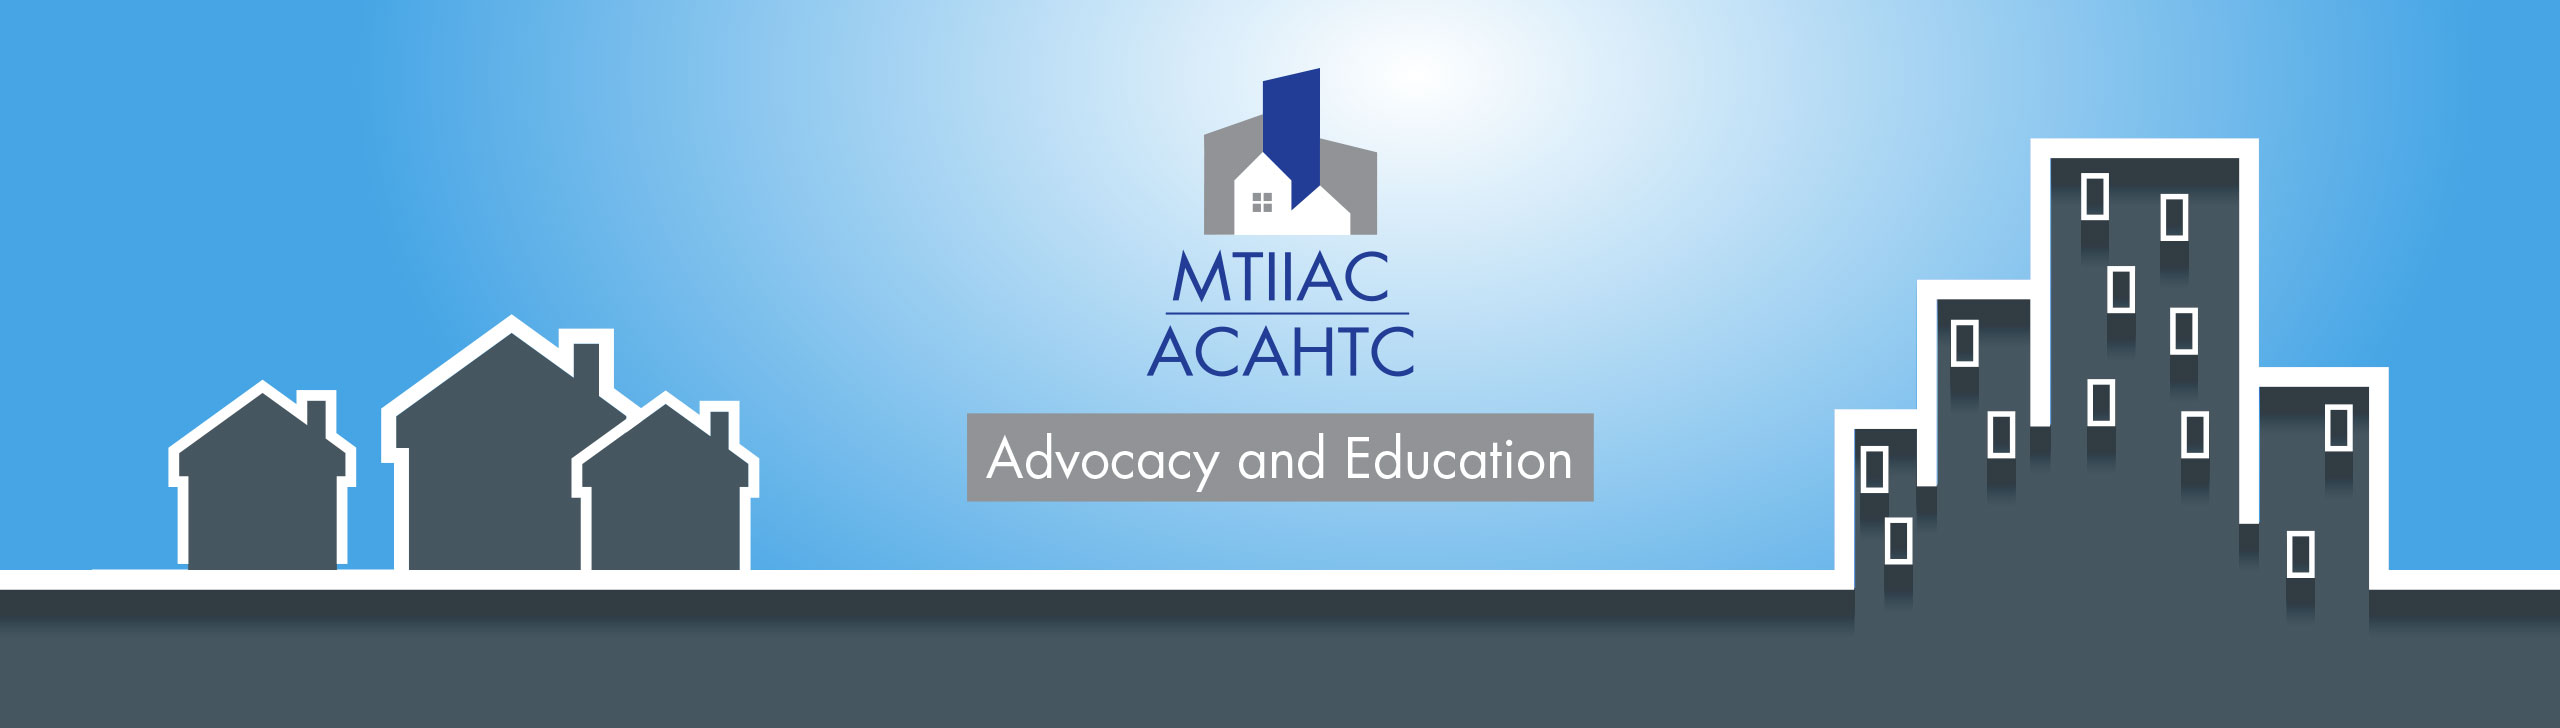 Advocacy and Education